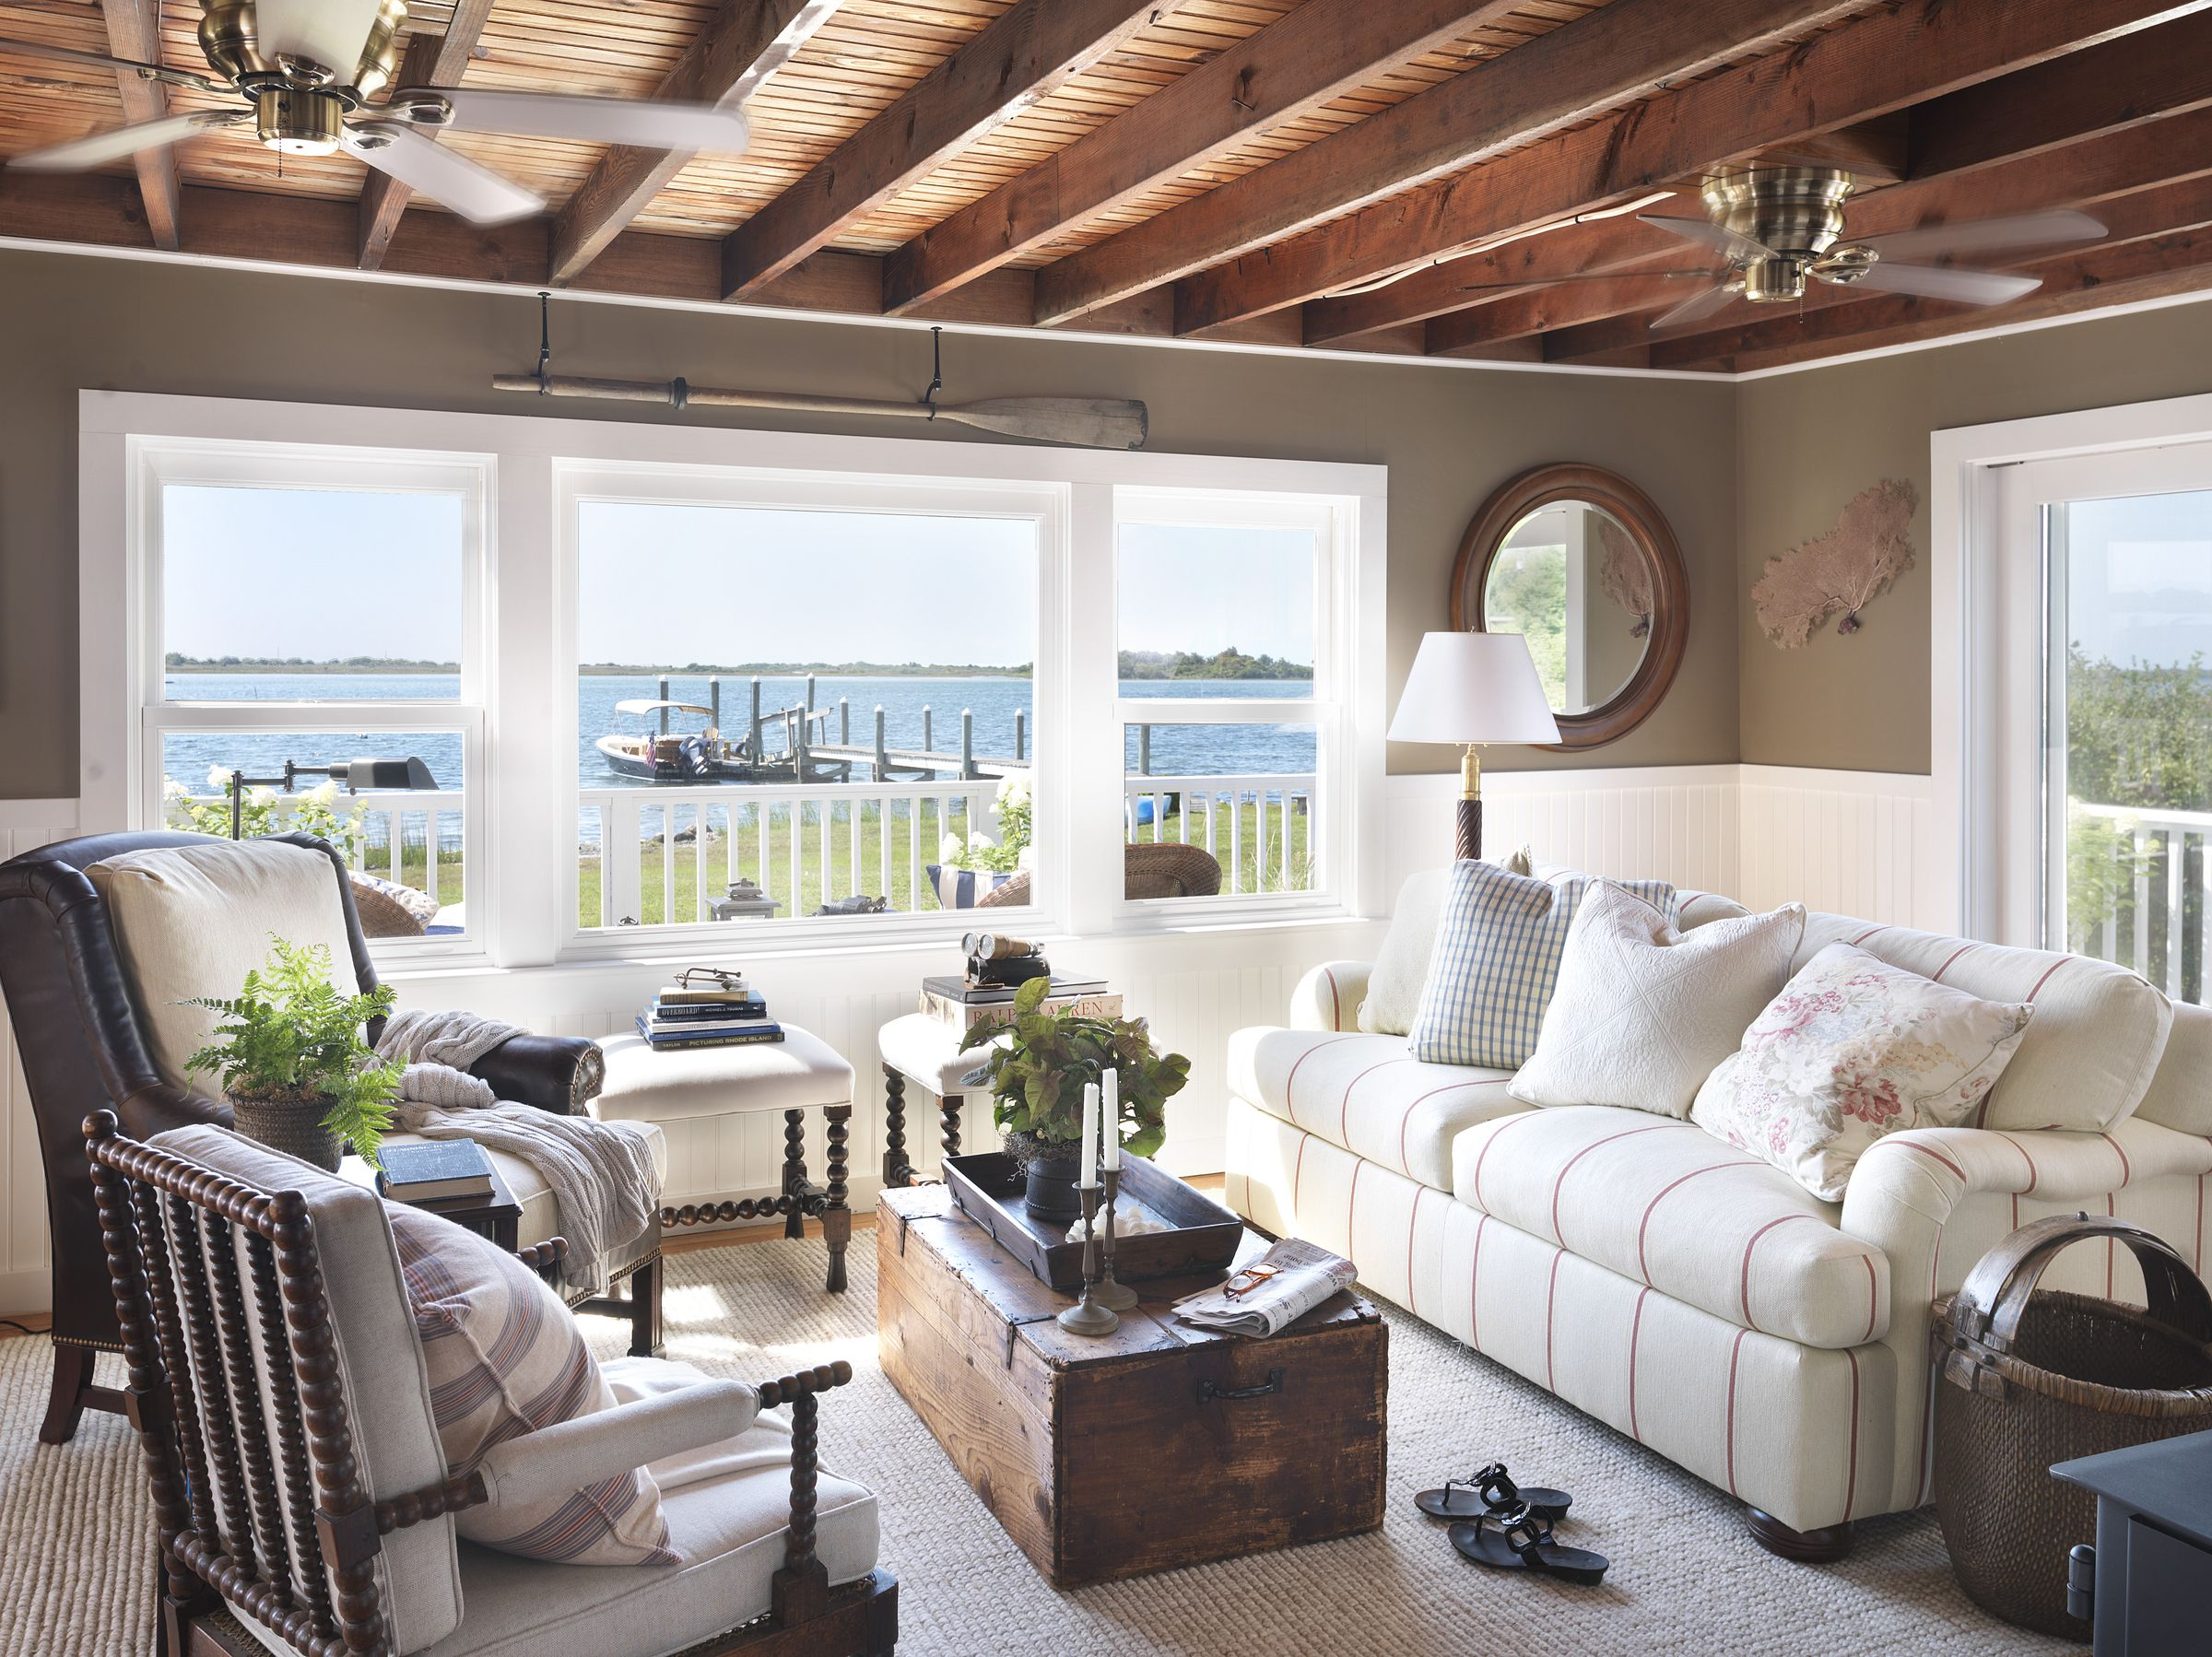 Nautical decor cozy cottage with Ralph Lauren and consignment store